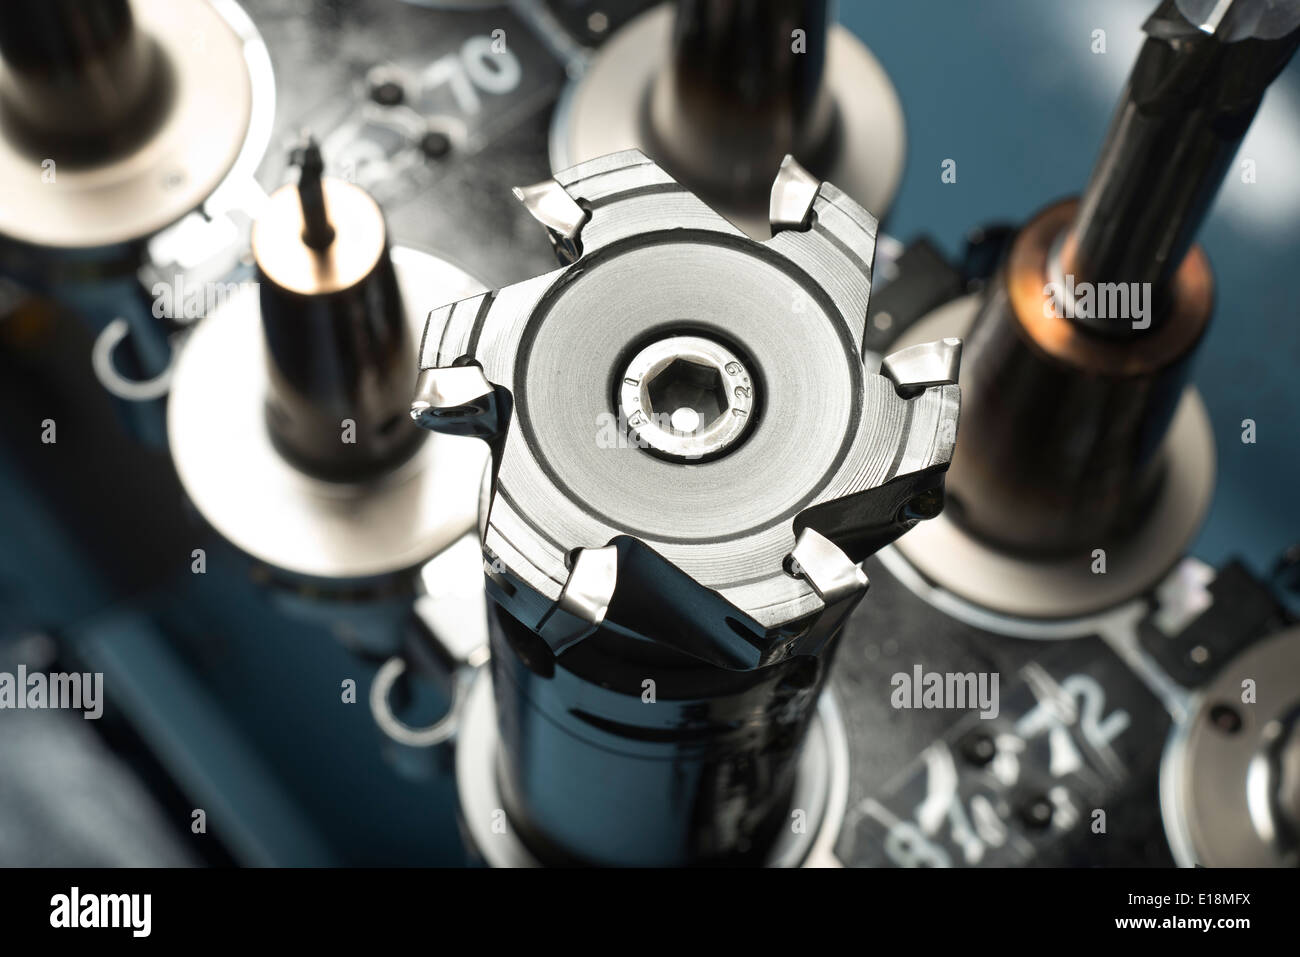 Drill bits for machining metal parts, in an engineering factory. - Stock Image